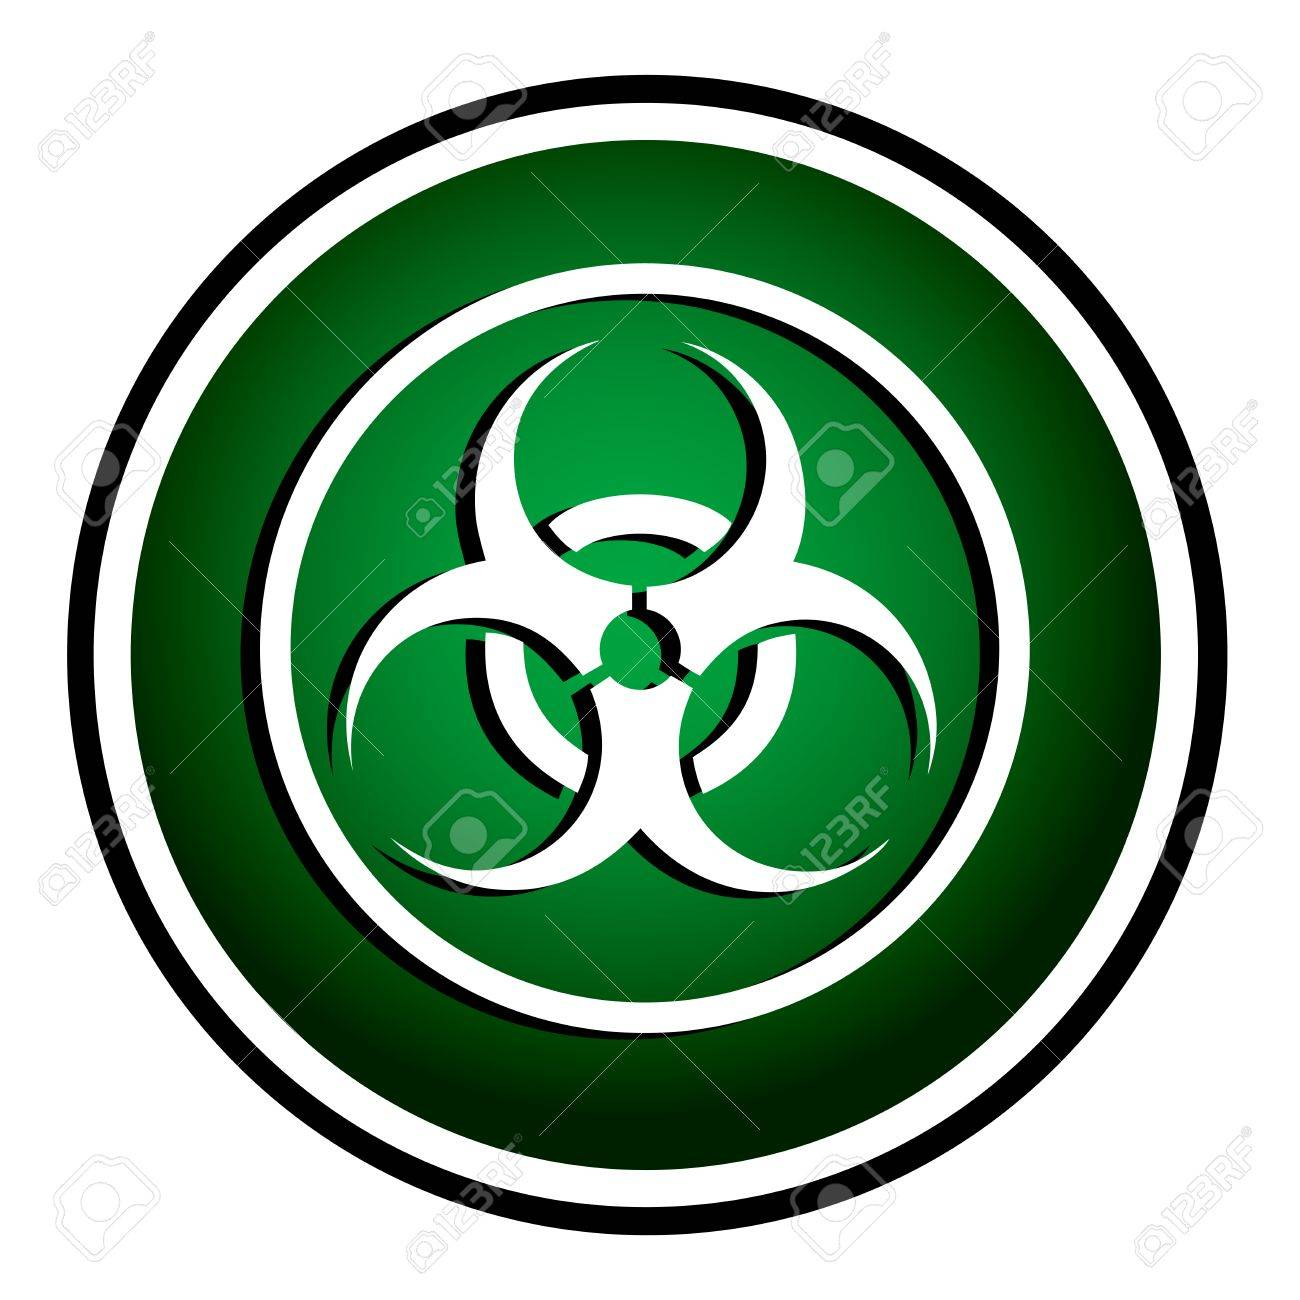 Warning symbol biohazard green round icon royalty free cliparts warning symbol biohazard green round icon stock vector 23161249 biocorpaavc Image collections